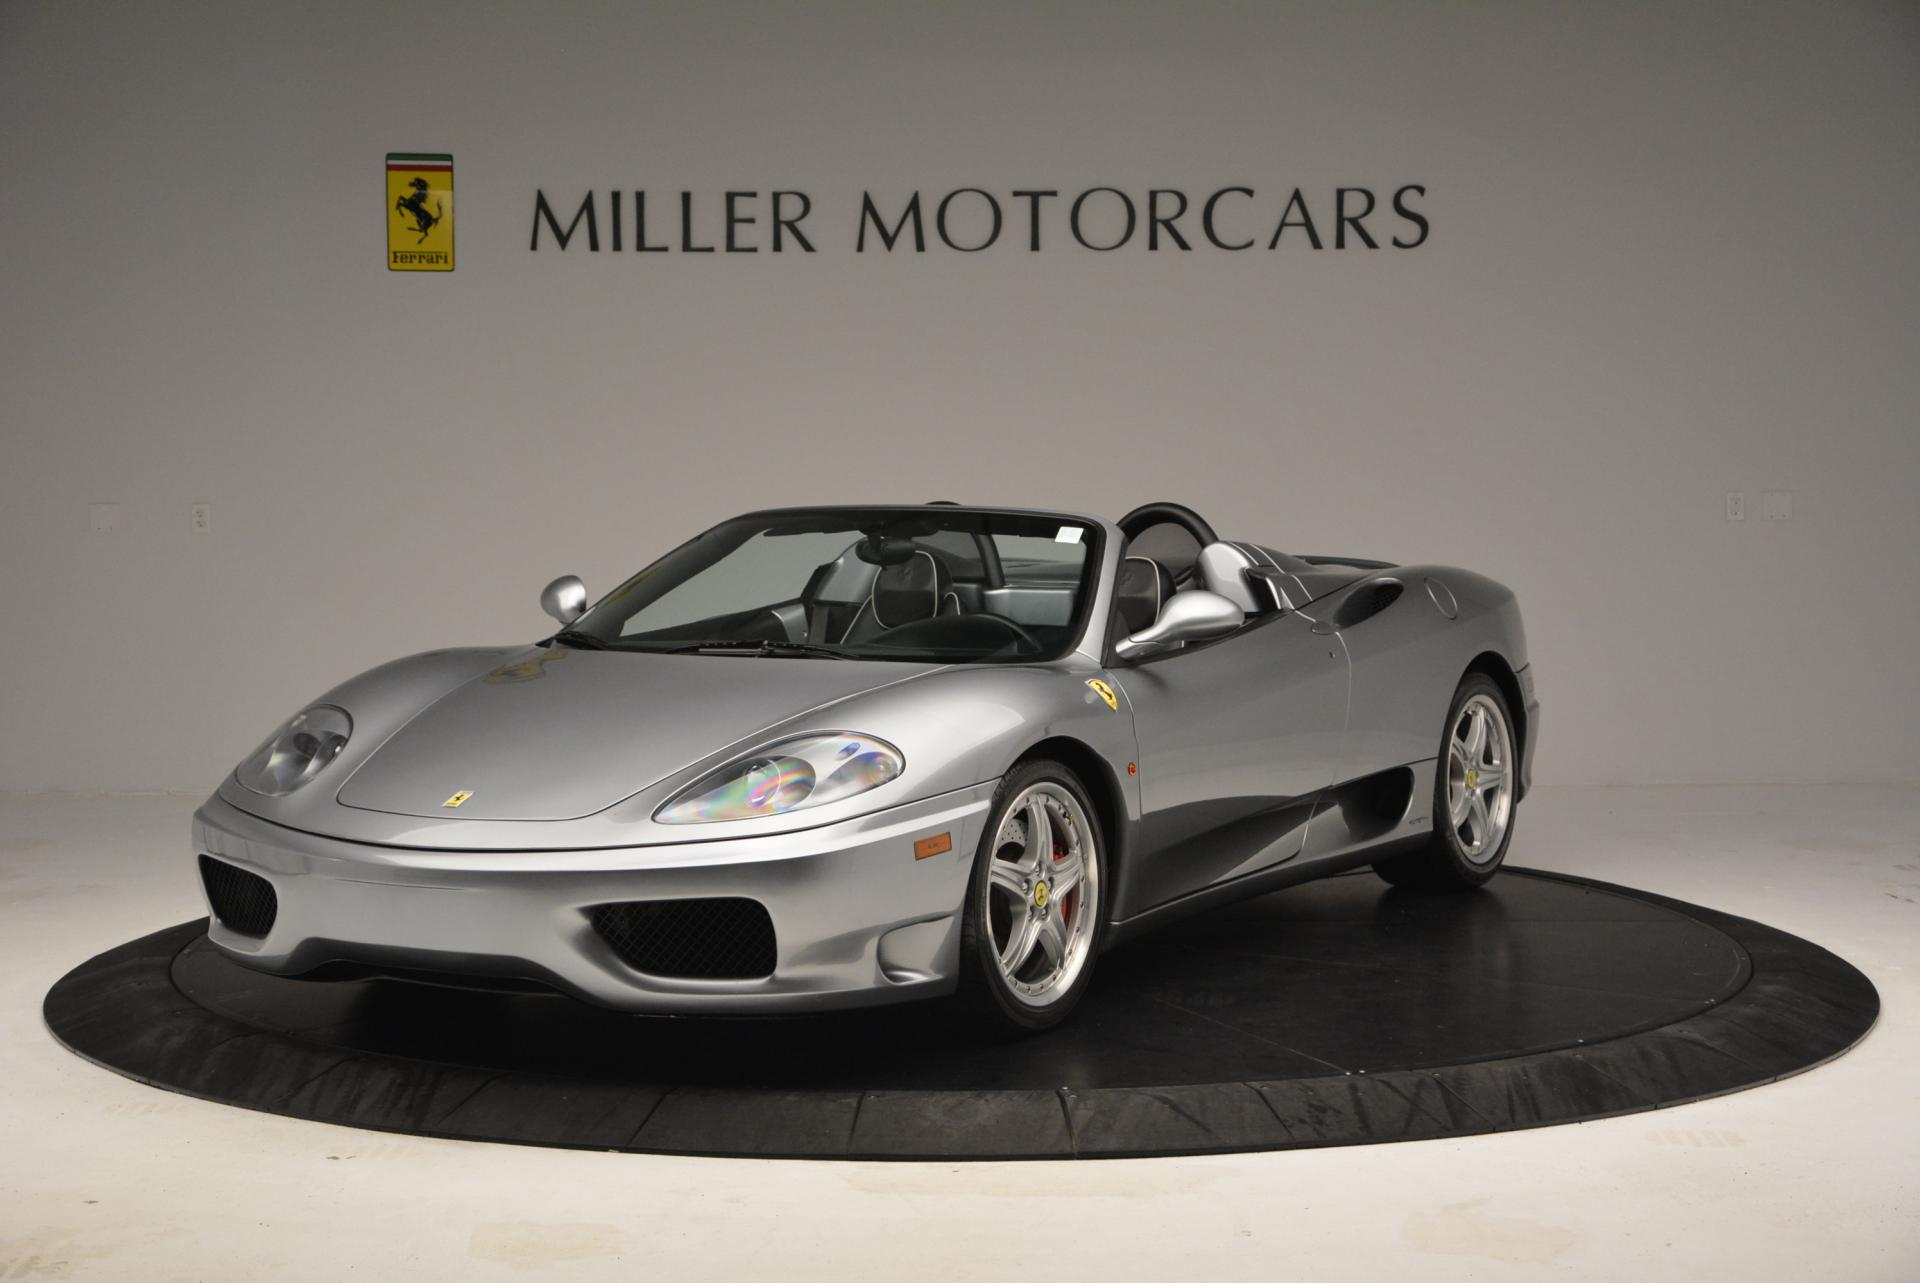 Used 2004 Ferrari 360 Spider 6-Speed Manual for sale Sold at Pagani of Greenwich in Greenwich CT 06830 1